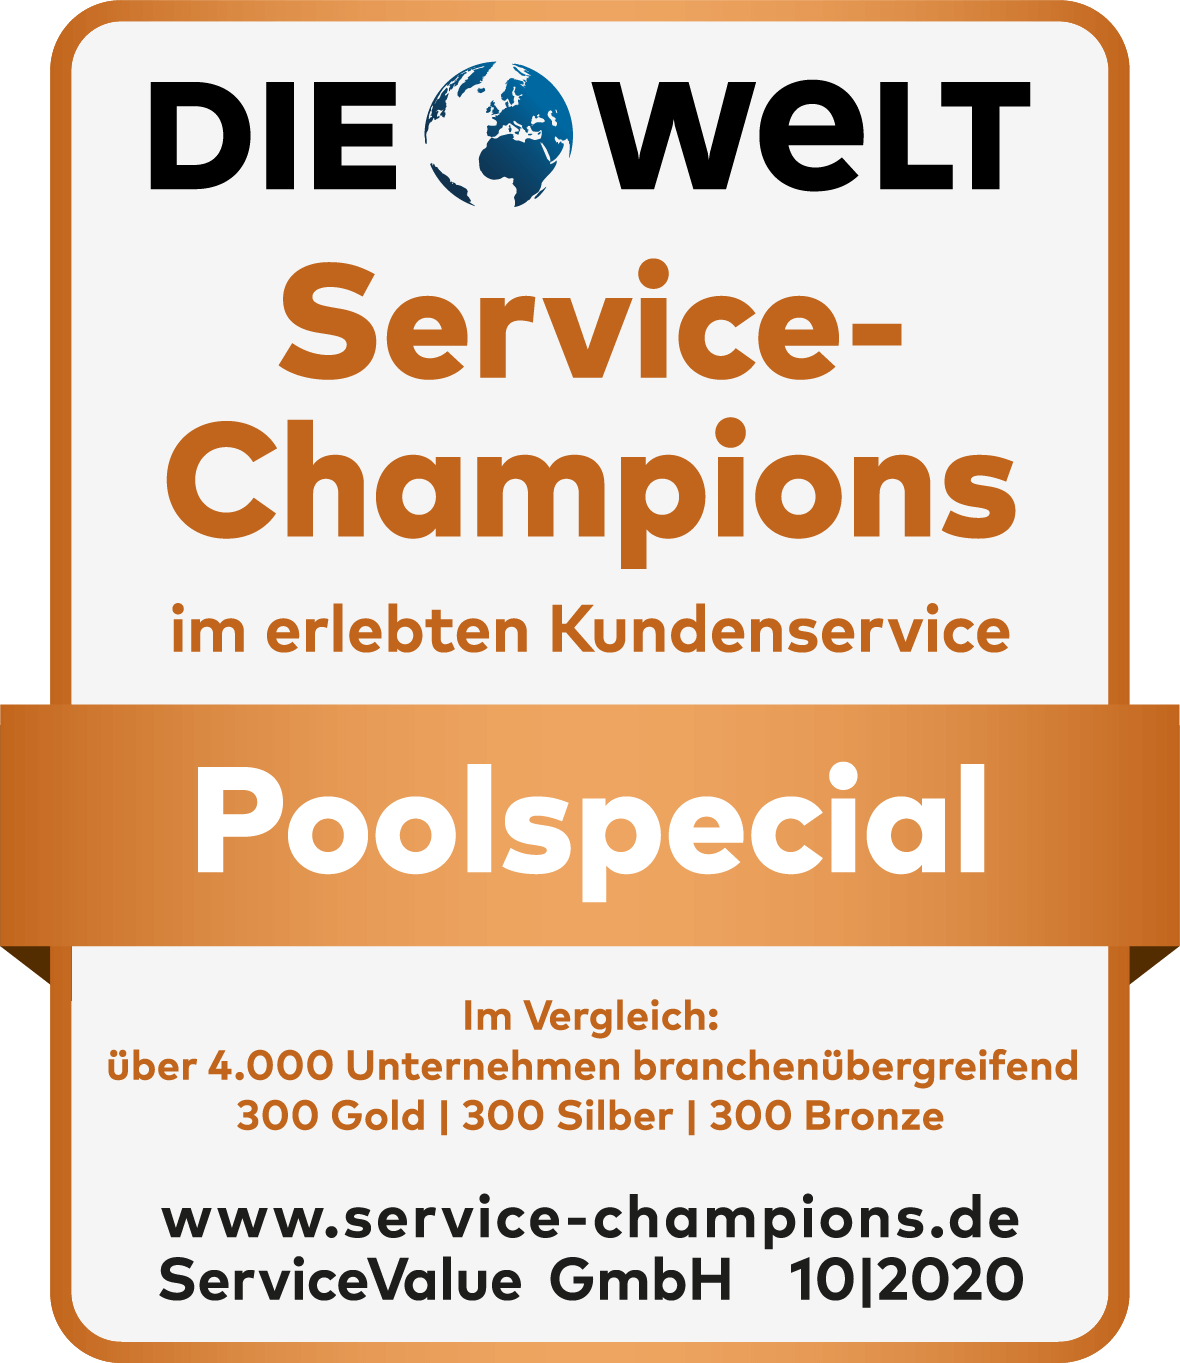 poolspecial-service-champions